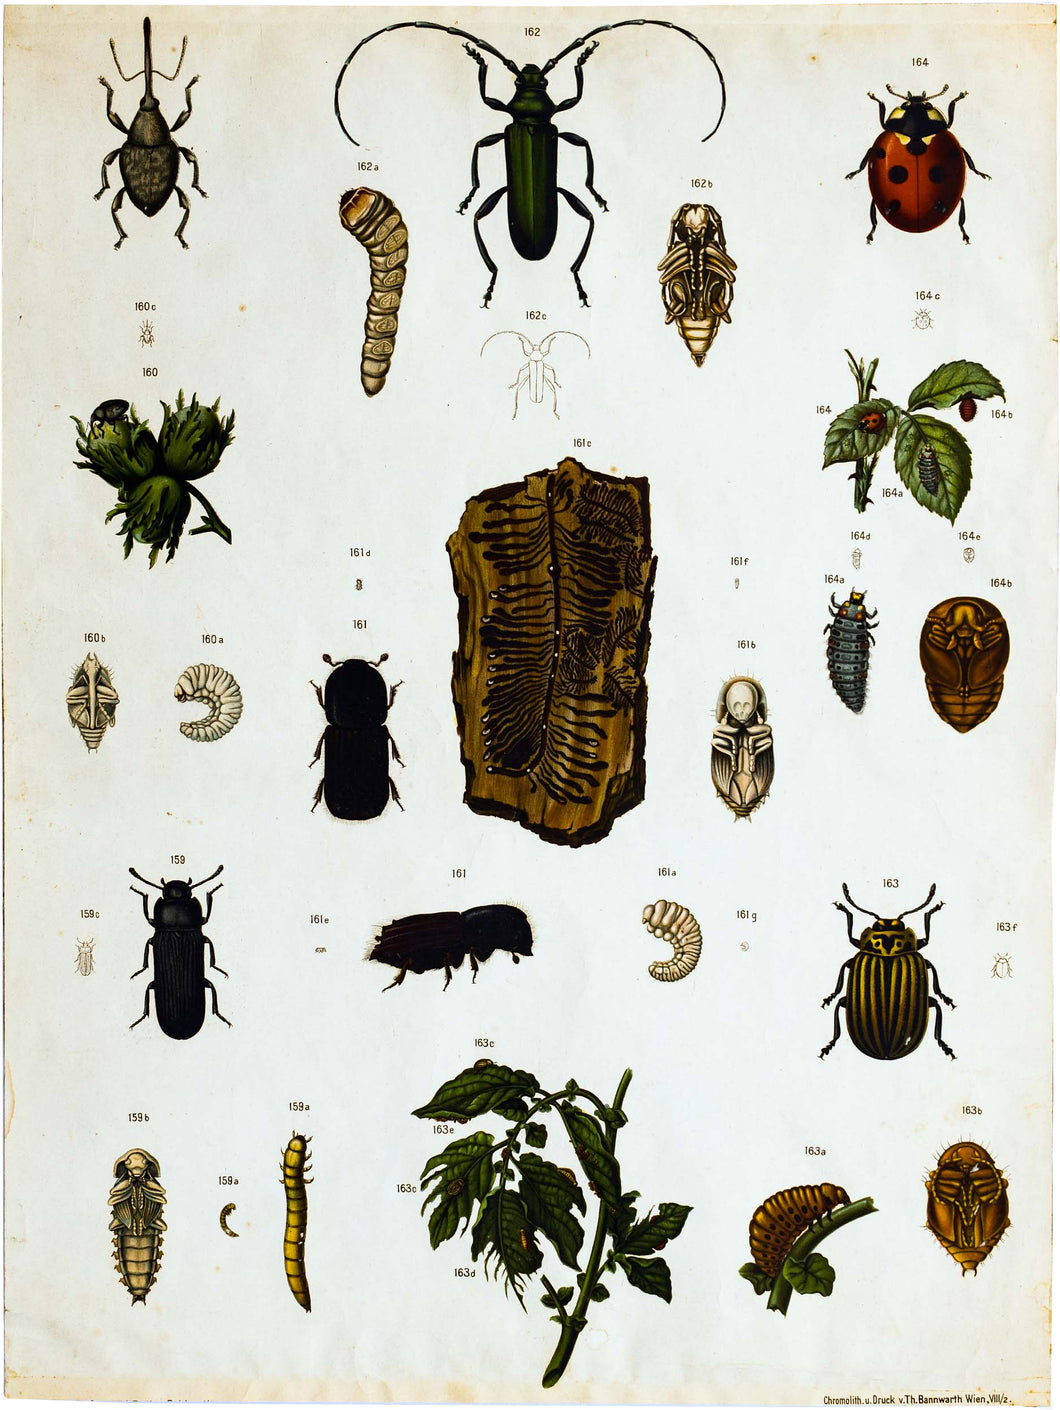 Vintage Zoological Wall Chart, 1912